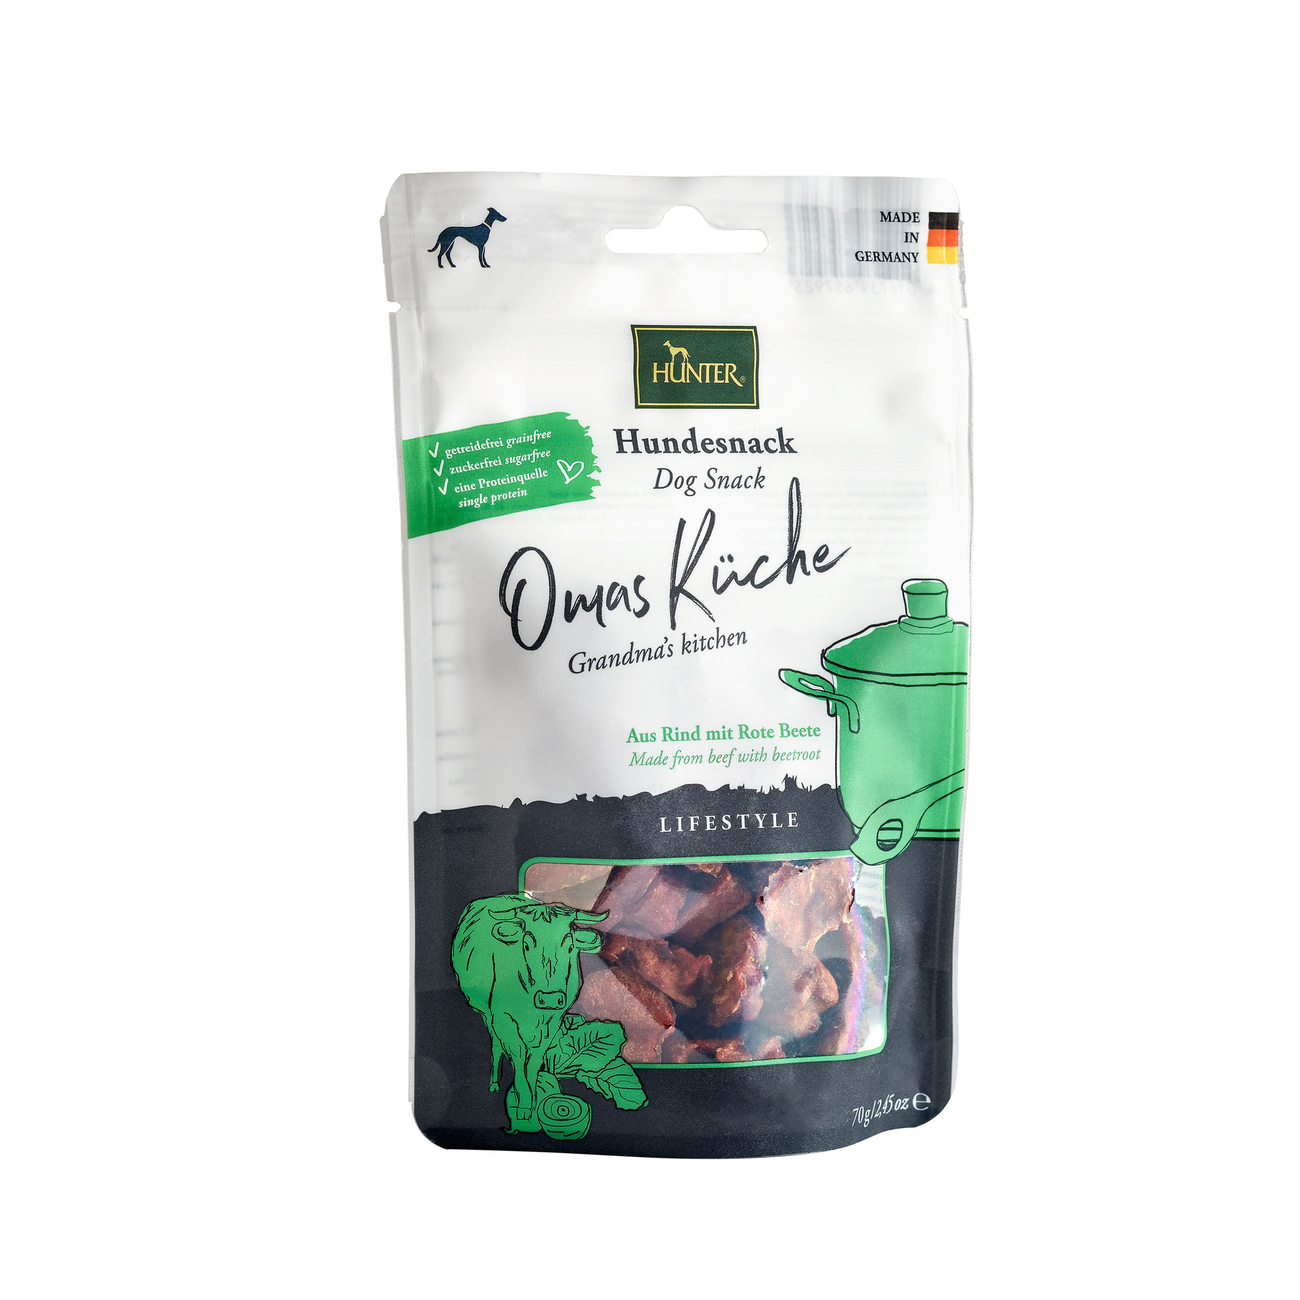 Hunter Hundesnack Lifestyle 65795, Bild 3